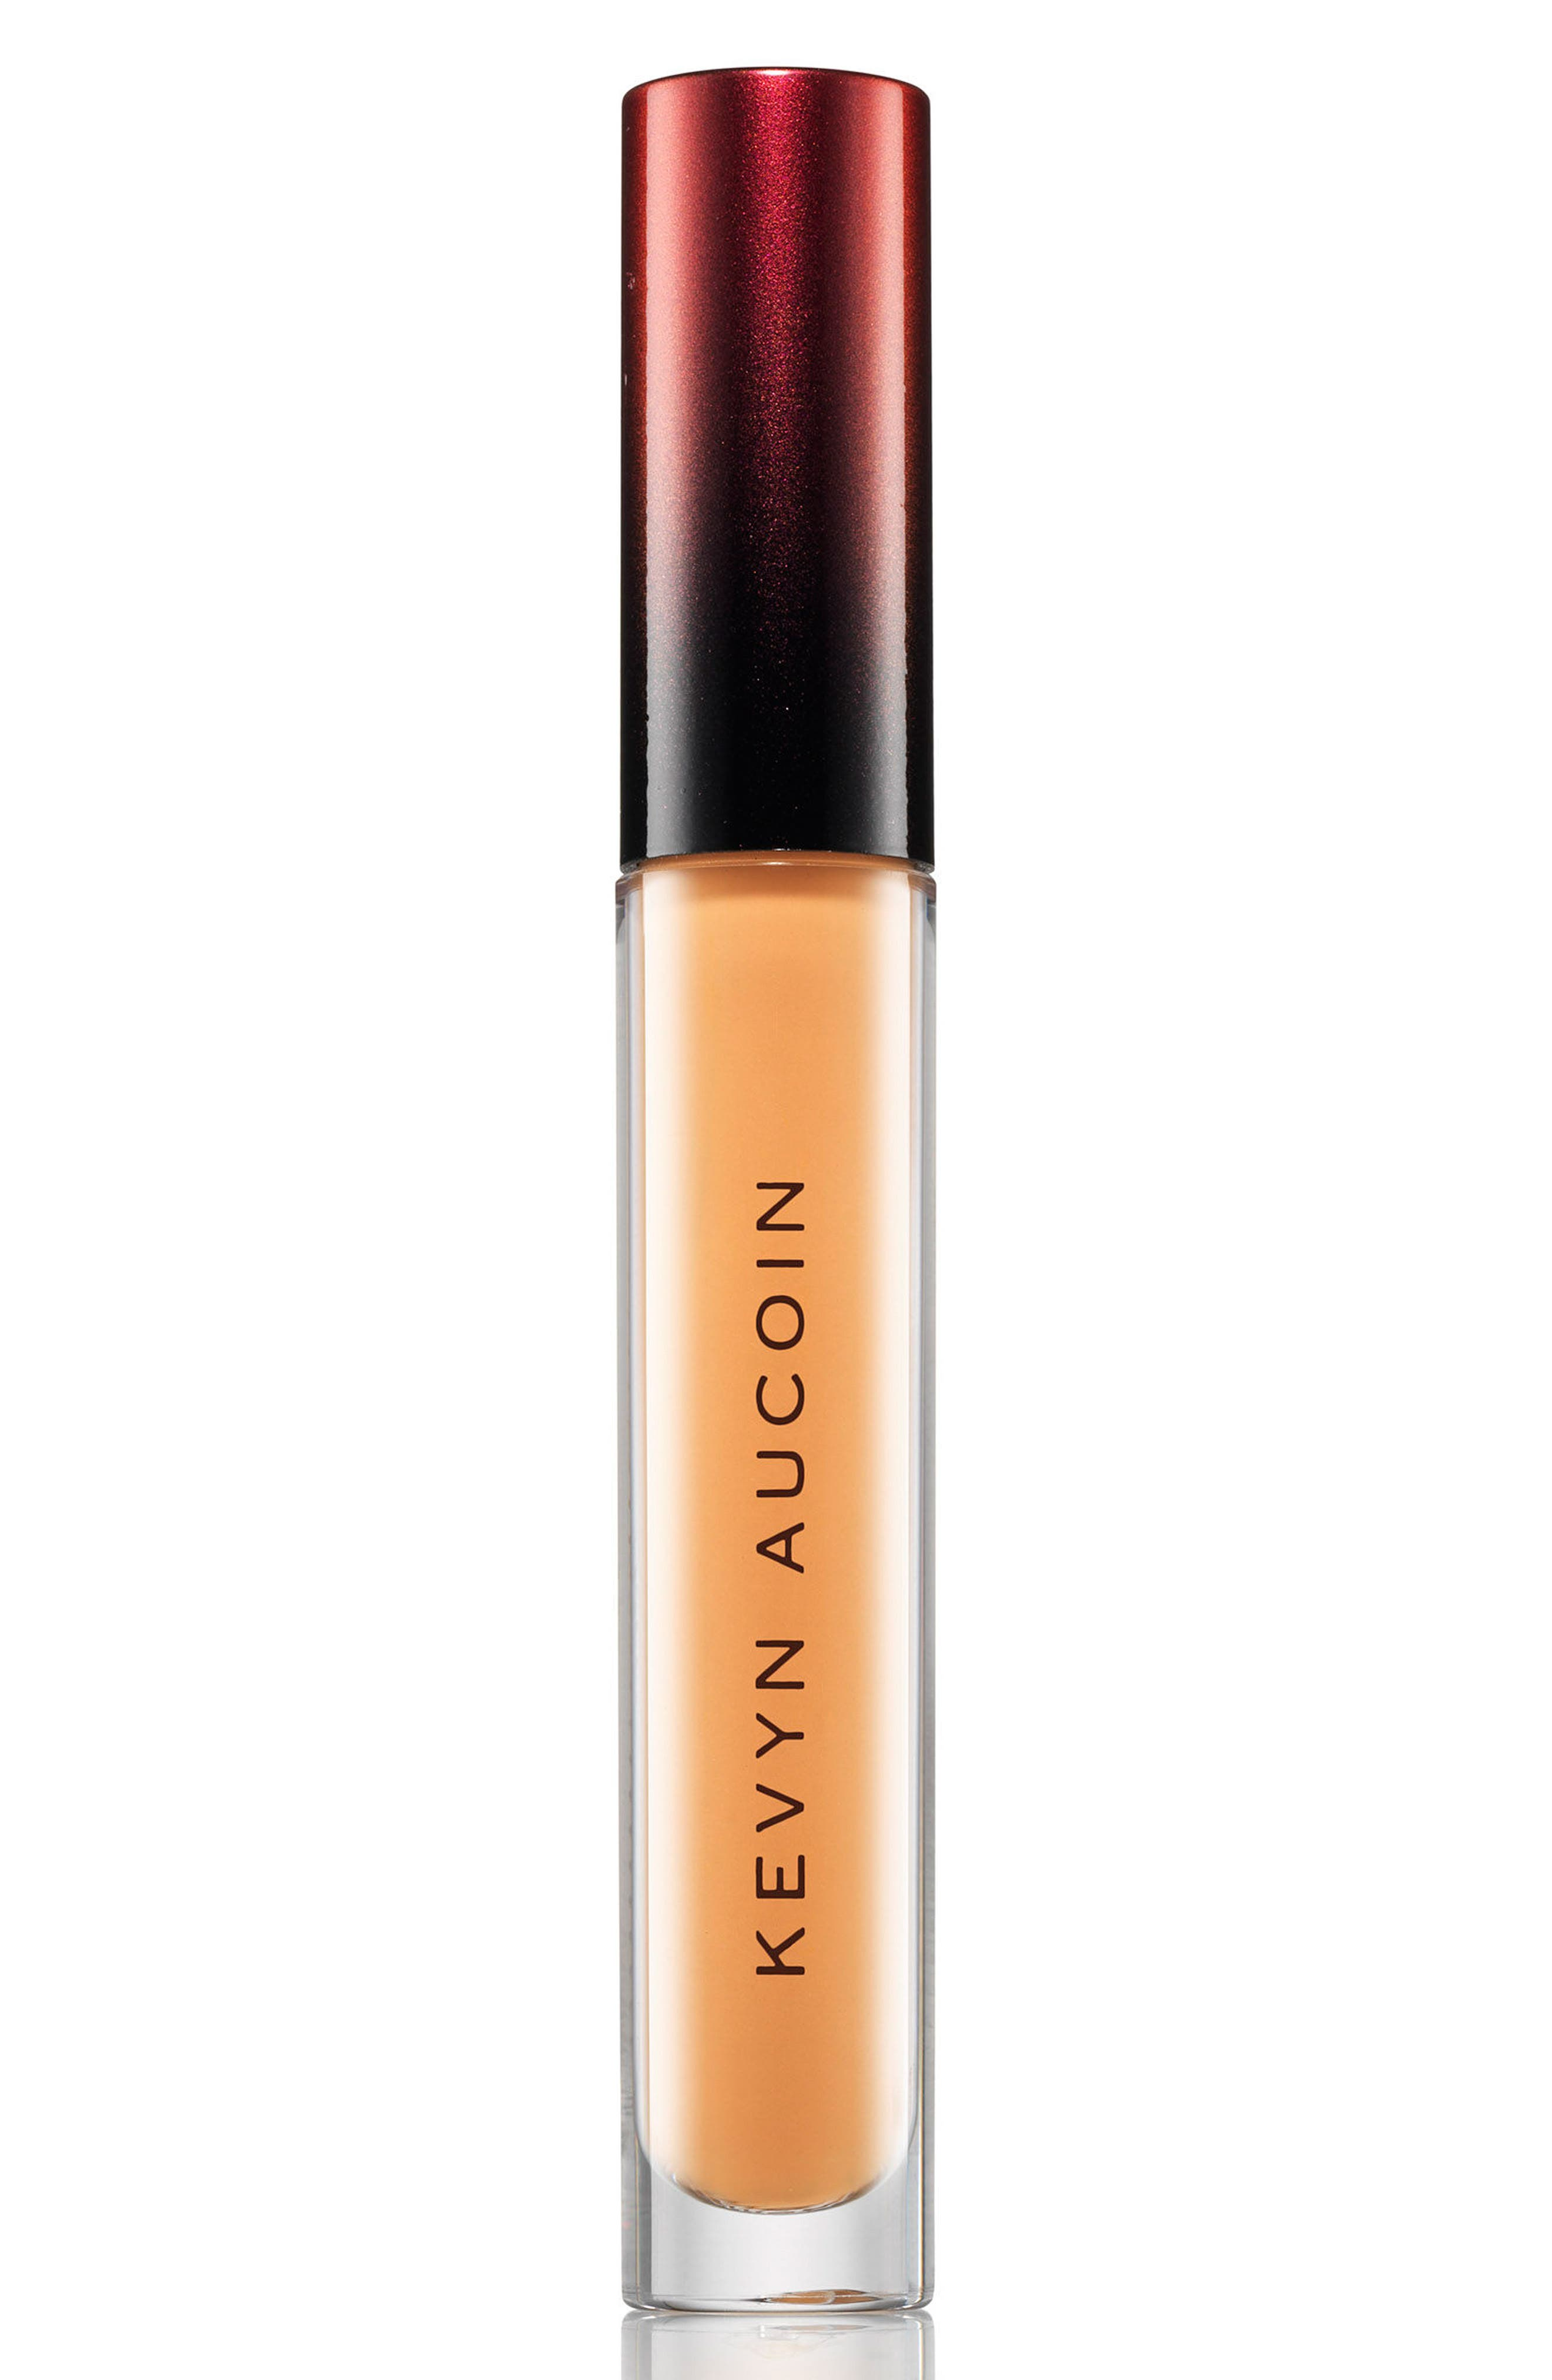 SPACE.NK.apothecary Kevyn Aucoin Beauty The Etherealist Super Natural Concealer